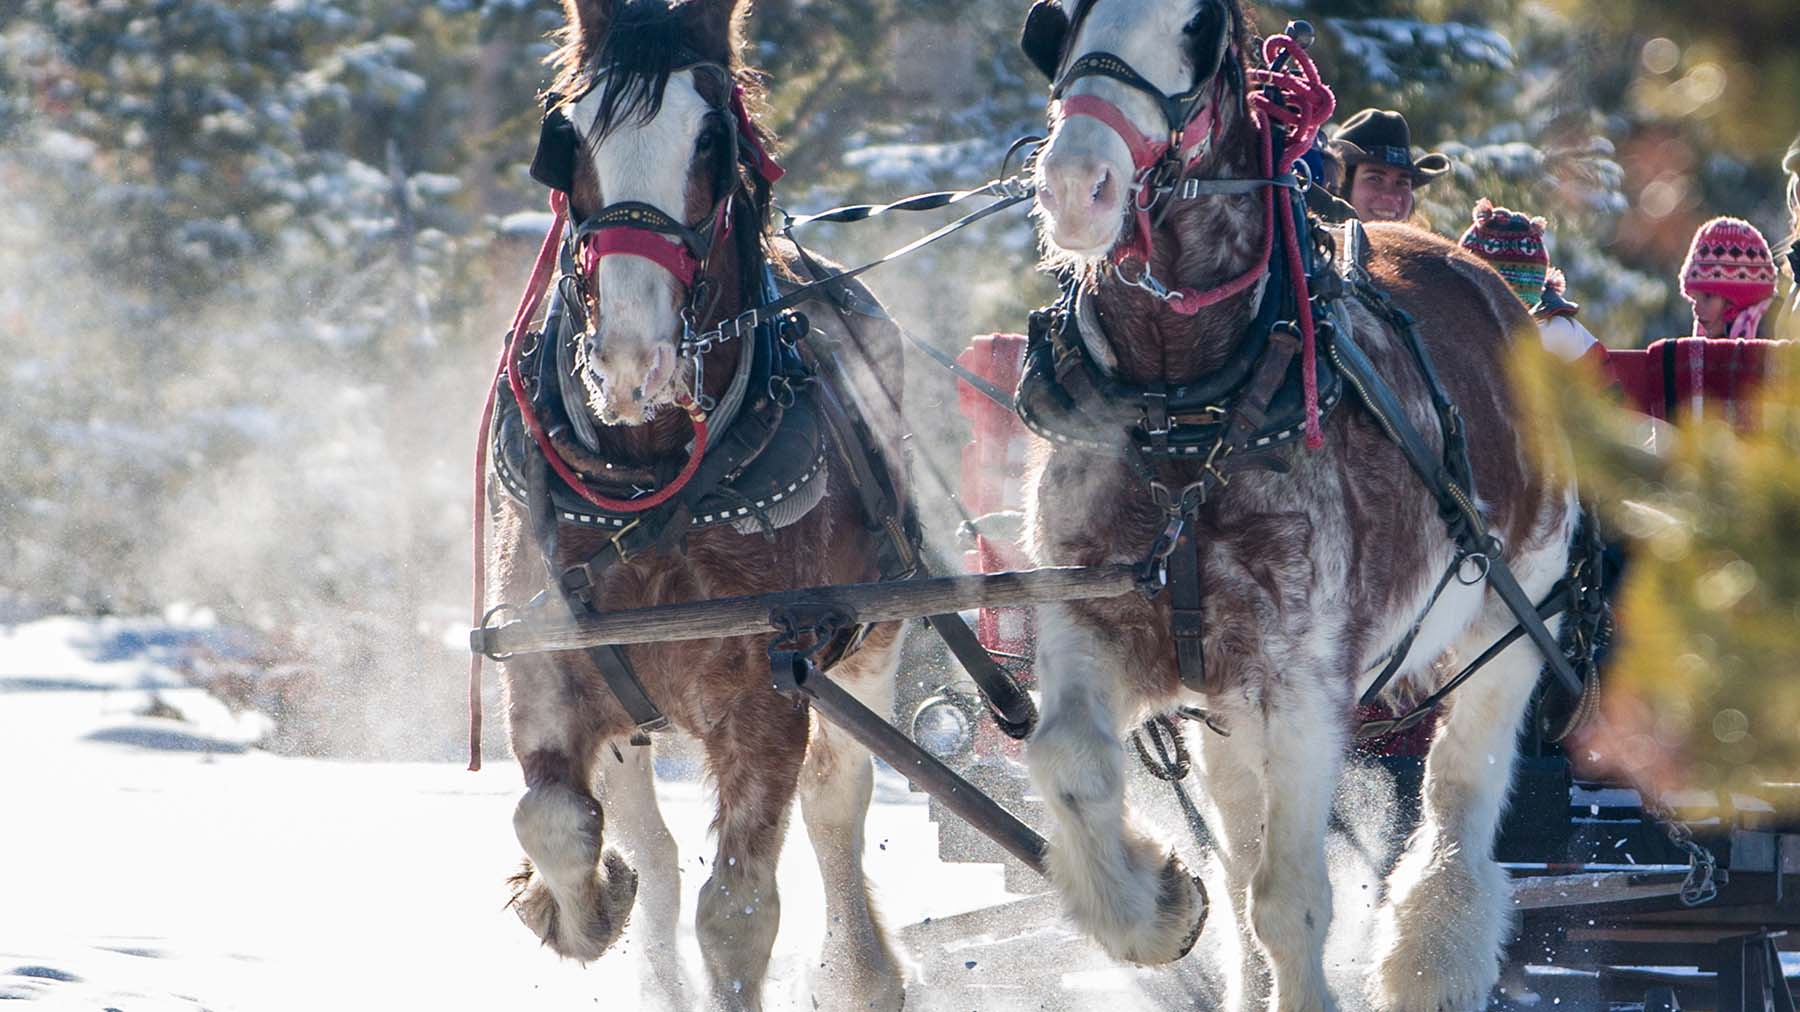 sleigh rides in and around the town of winter park